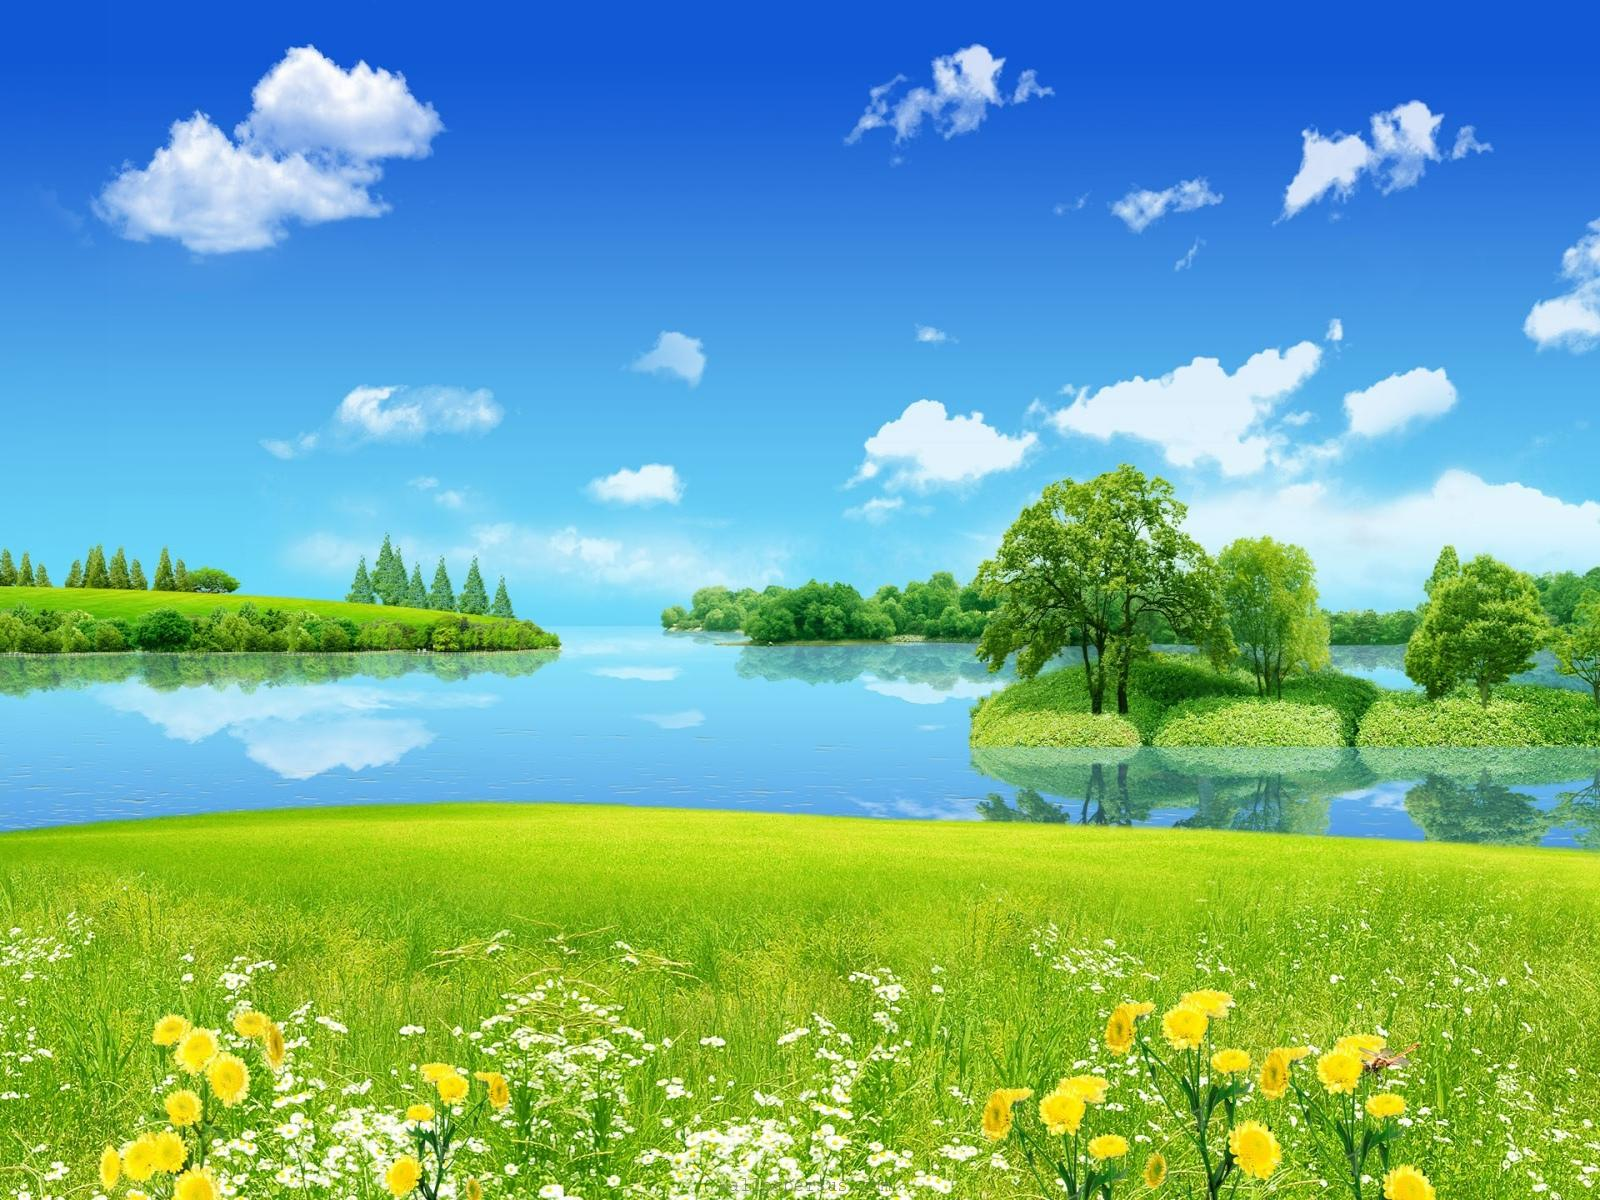 50 1600 x 1200 nature wallpaper on wallpapersafari - Desktop wallpaper 1600x1200 ...